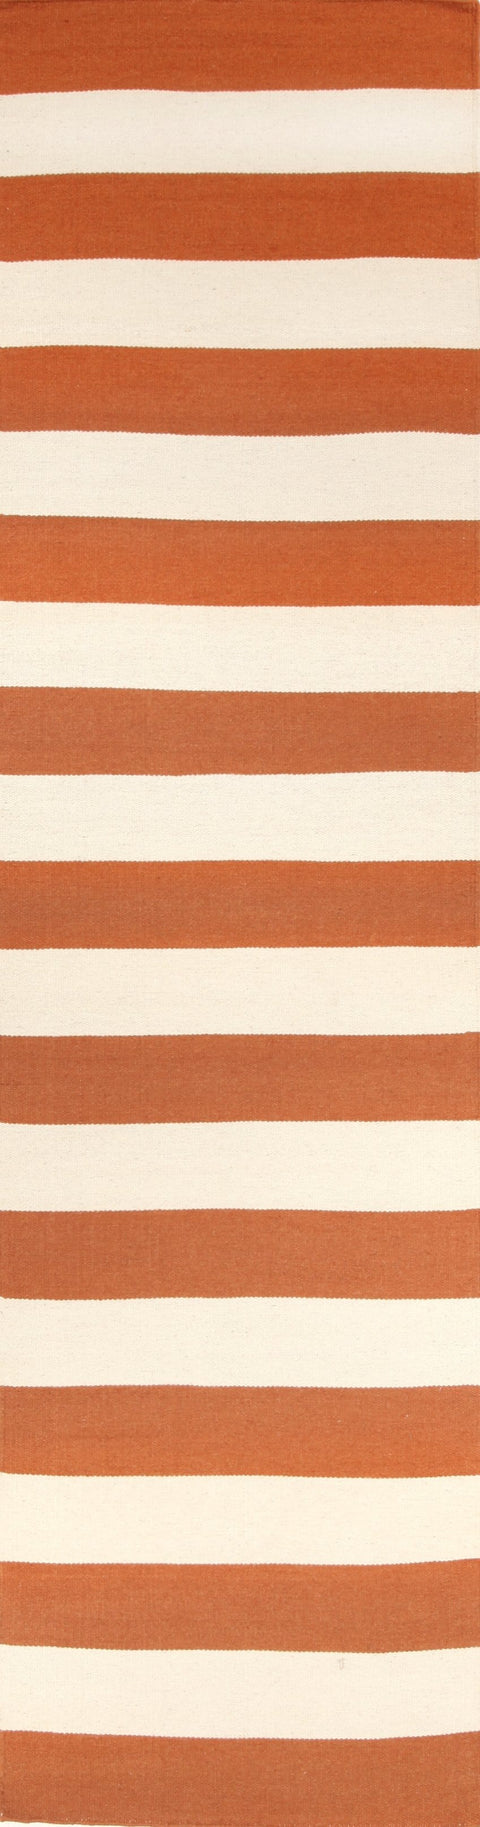 Atrani Orange Awning Stripe Flatweave Runner Rug